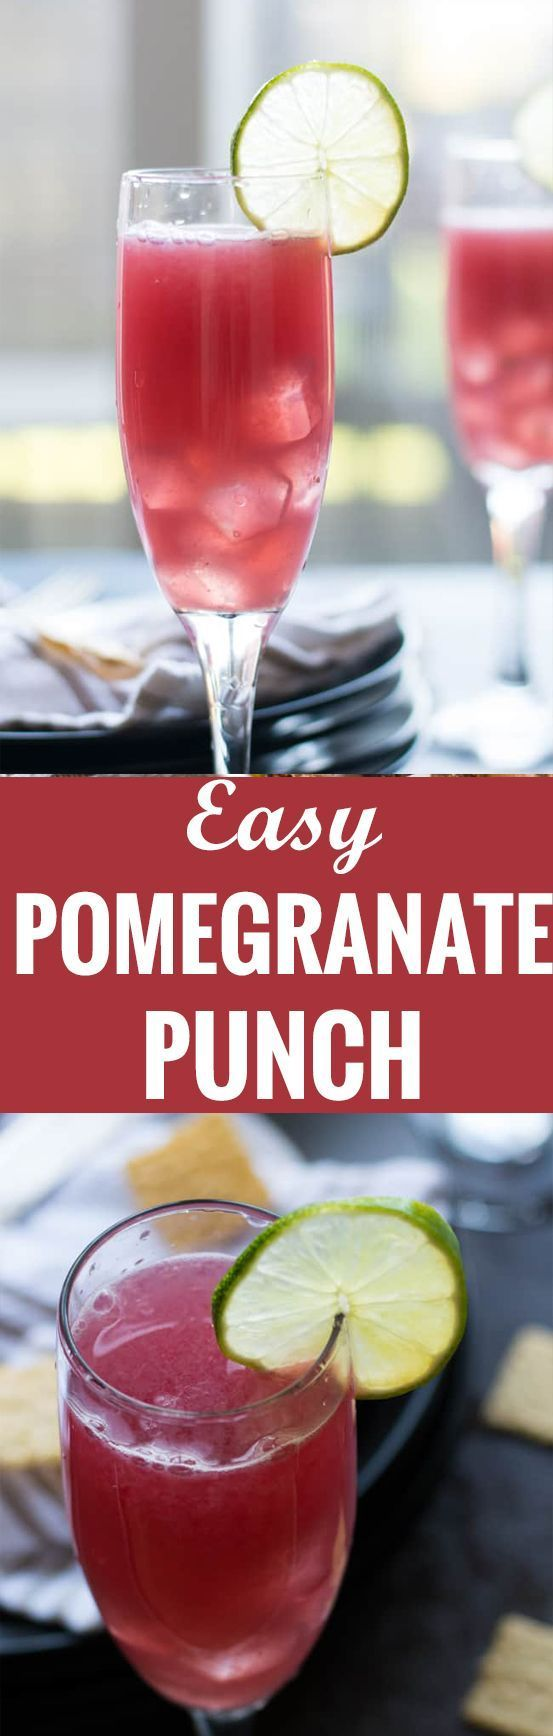 Pomegranate punch recipe non alcoholic is healthy drink nicely created to be served in parties otherwise to treat ourselves with fresh fruit. This is perfect for summer and party